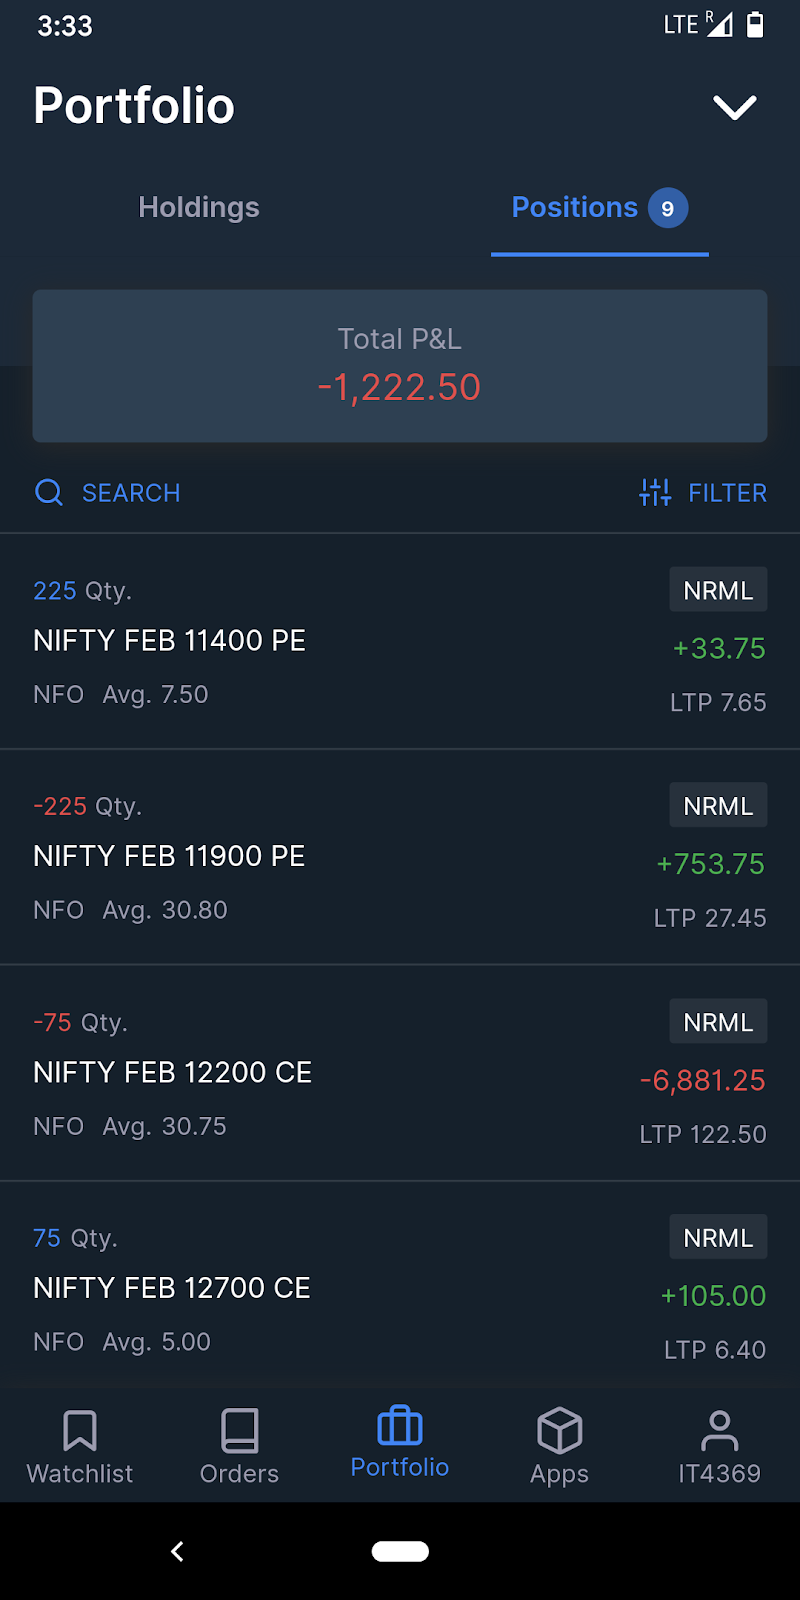 P&L for 12 Feb